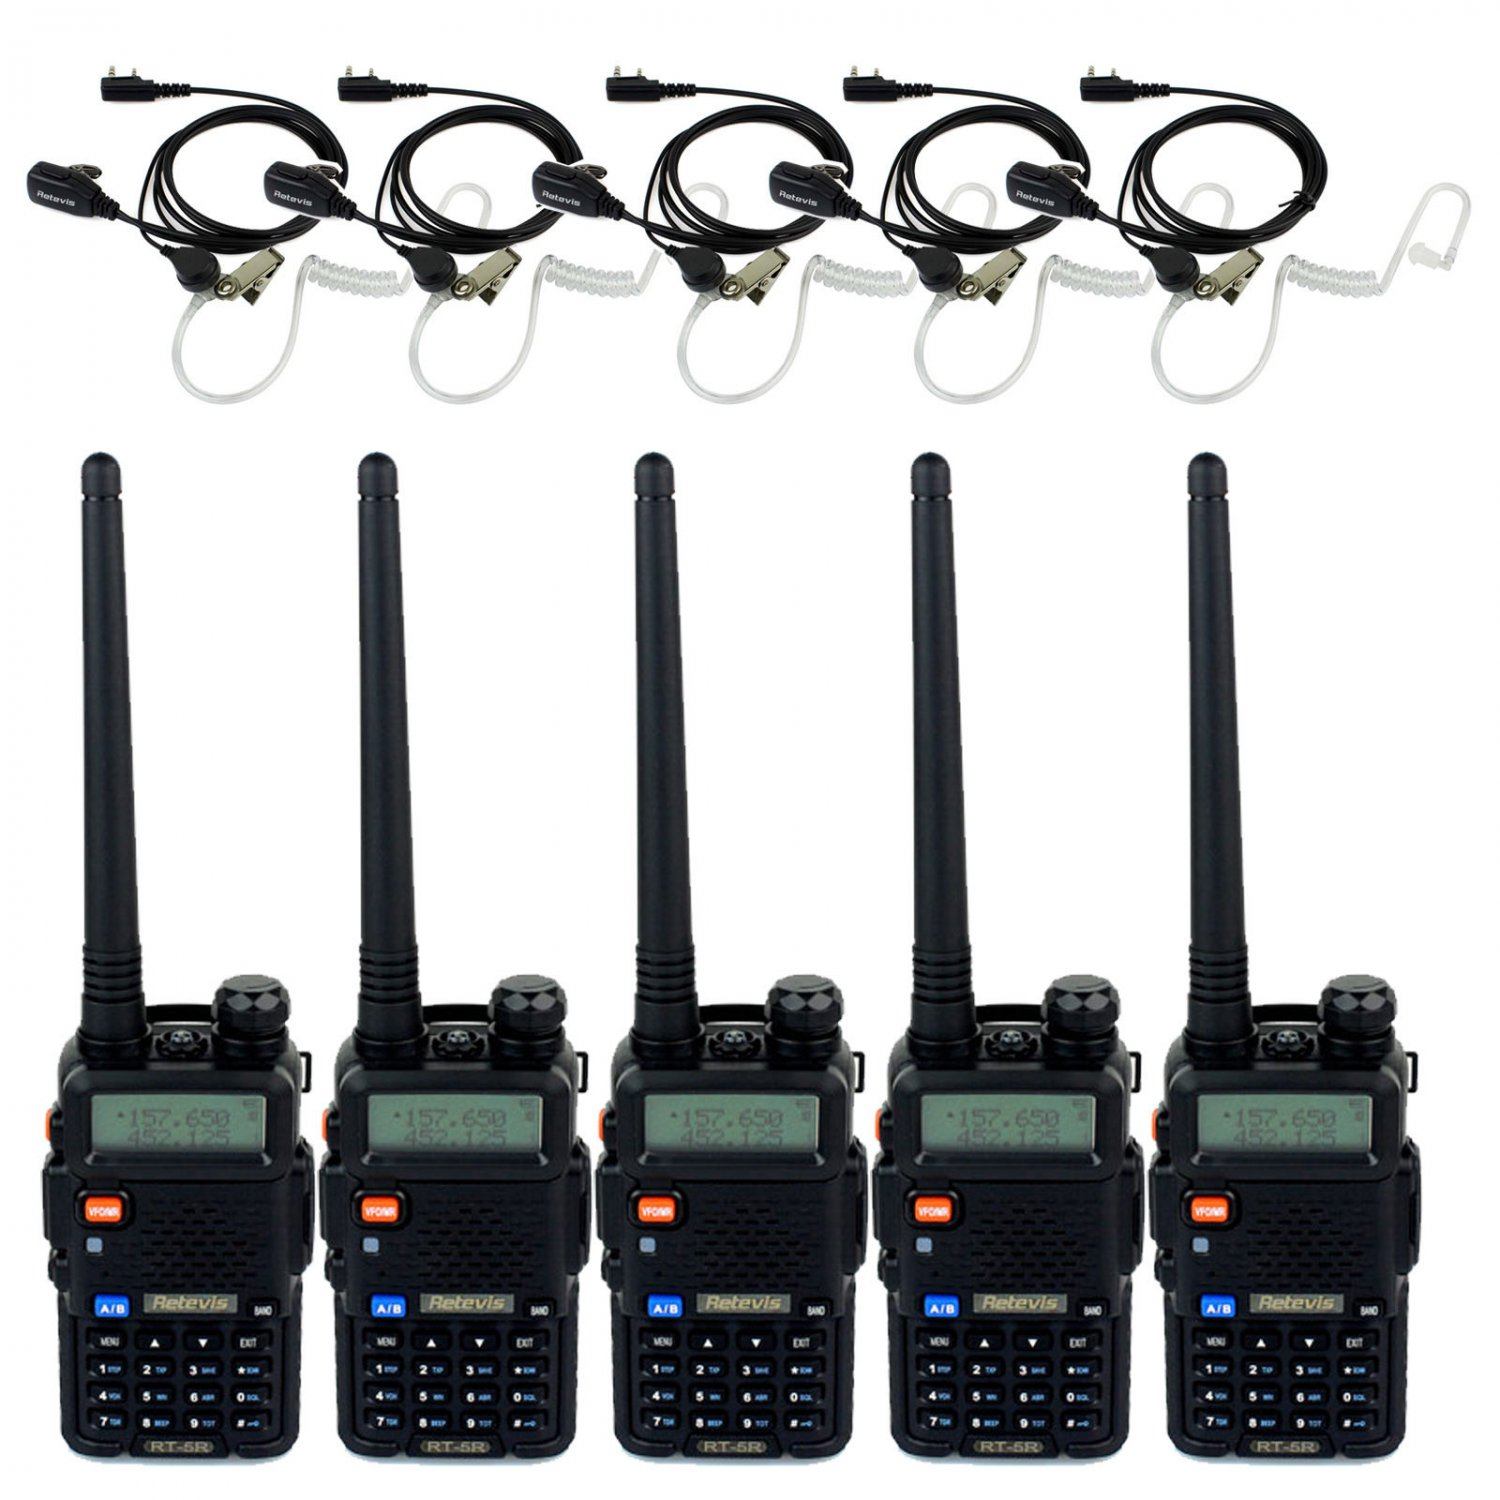 5x Retevis Walkie Talkie RT-5R FM VHF/UHF 5W 128CH Ham Radio+ 5x Earpieces